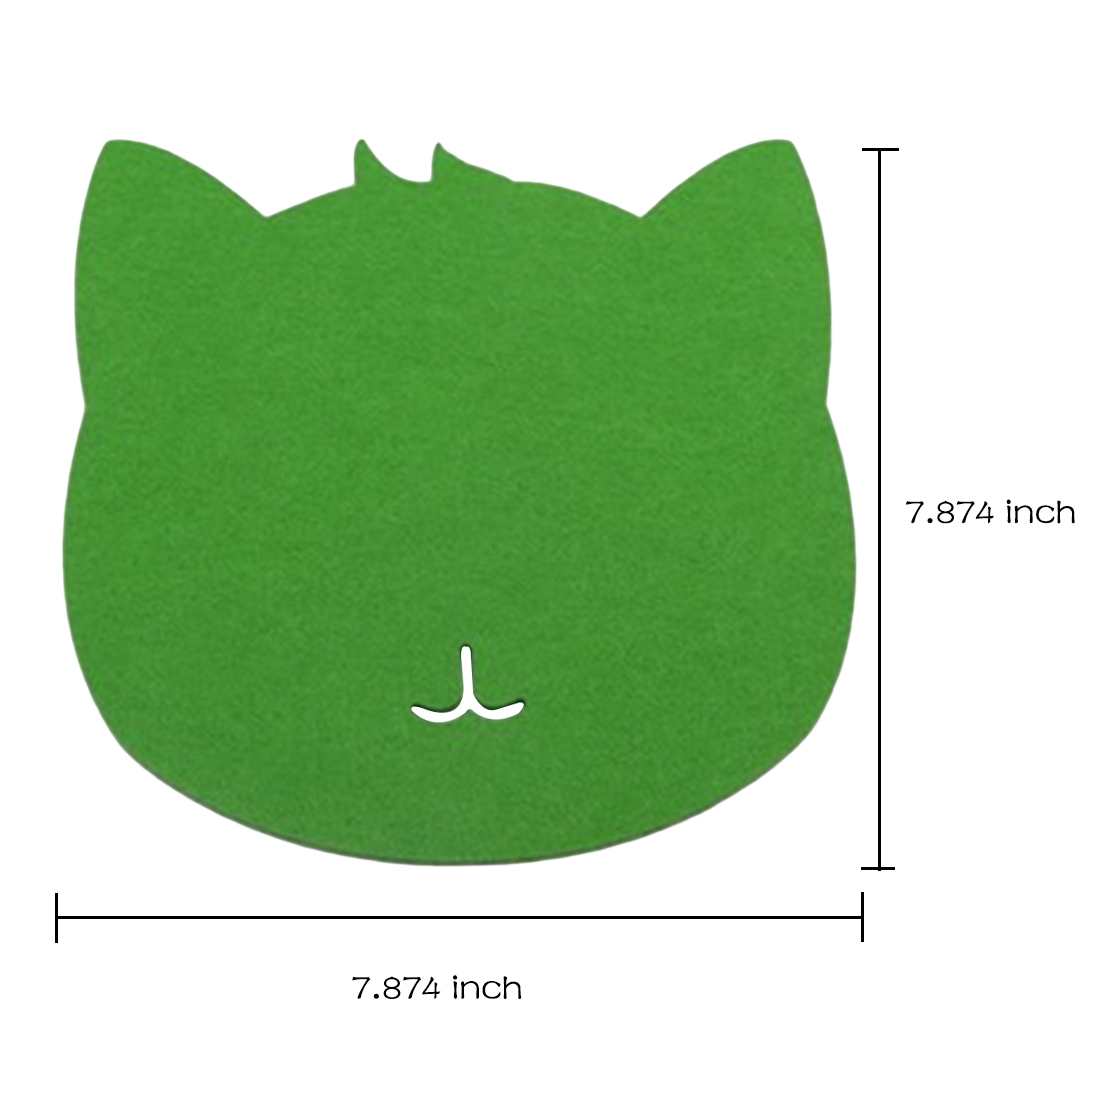 Computer Peripherals Optical Trackball Pc Thicken Mouse Pad Felt Cloth 220*220*3mm Universal Cute Cat Mousepad Mat For Laptop Computer Tablet Pc